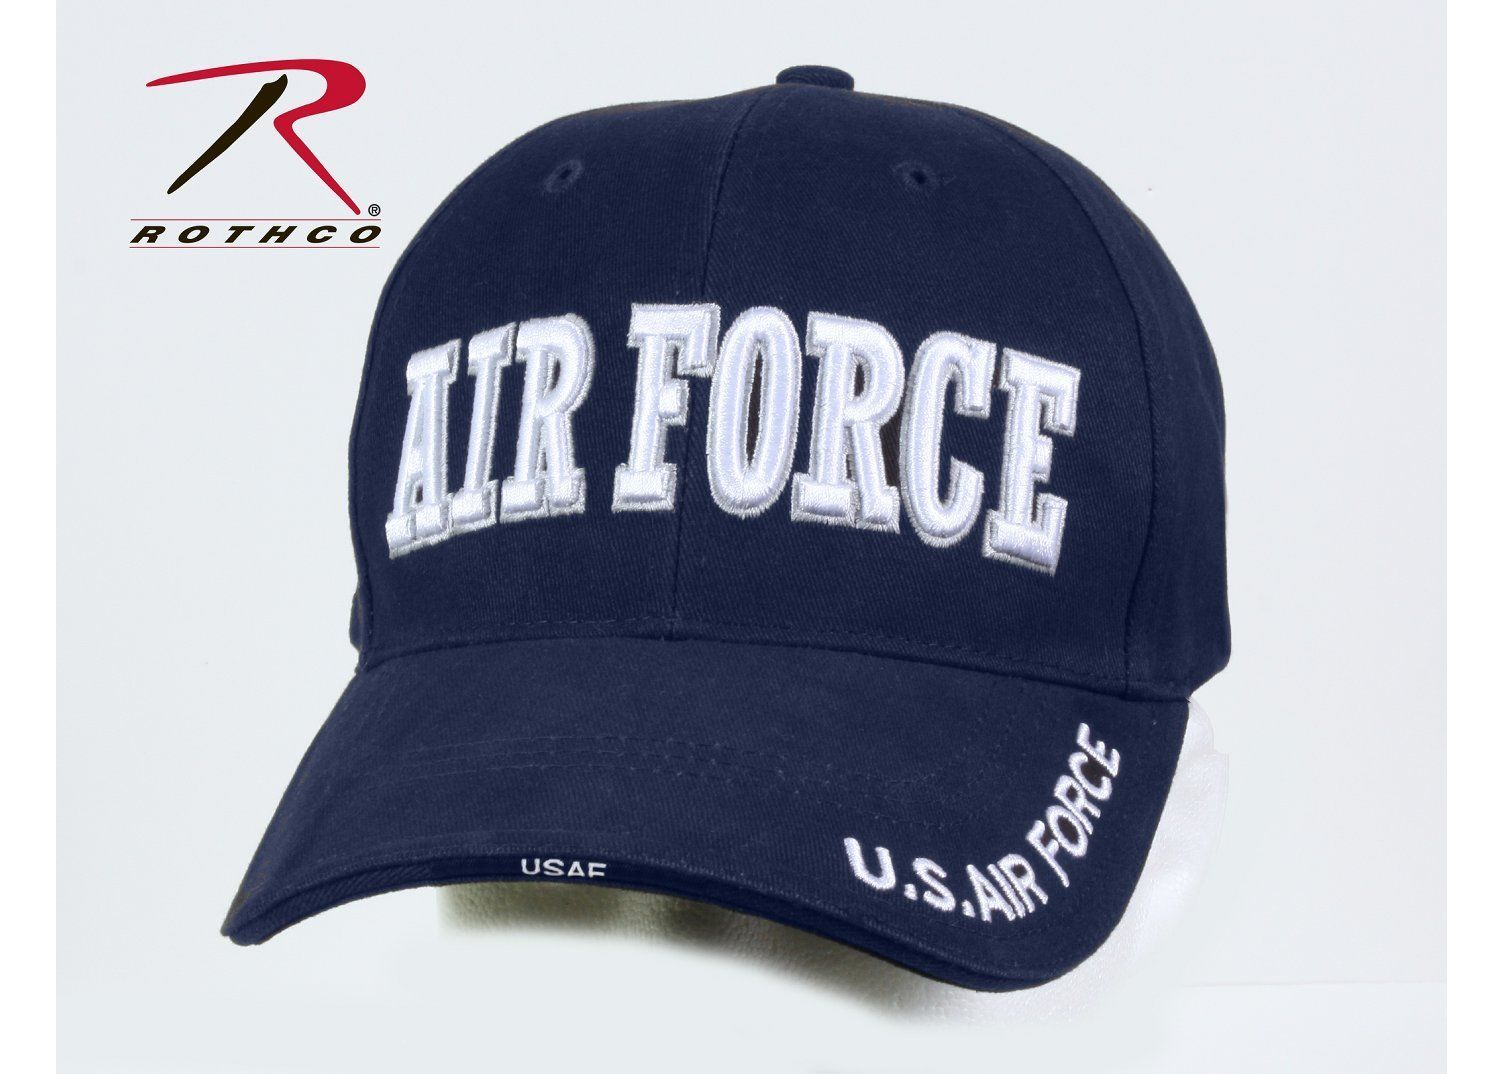 a081d21ae5a58 Rothco 9433 Deluxe Air Force Low Profile Cap - Blue